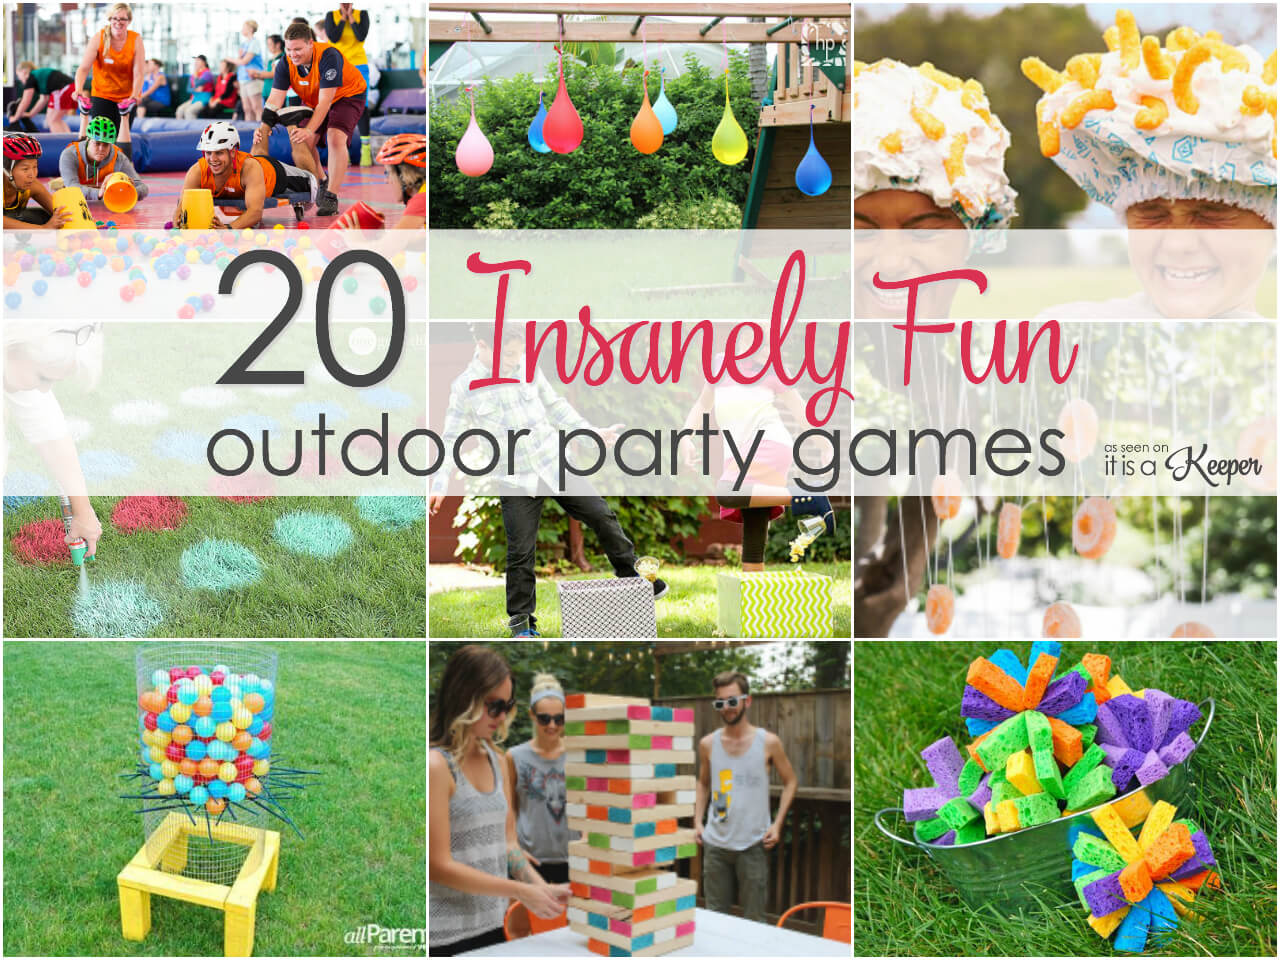 Outdoor Party Games - 20 insanely fun games for your next ...